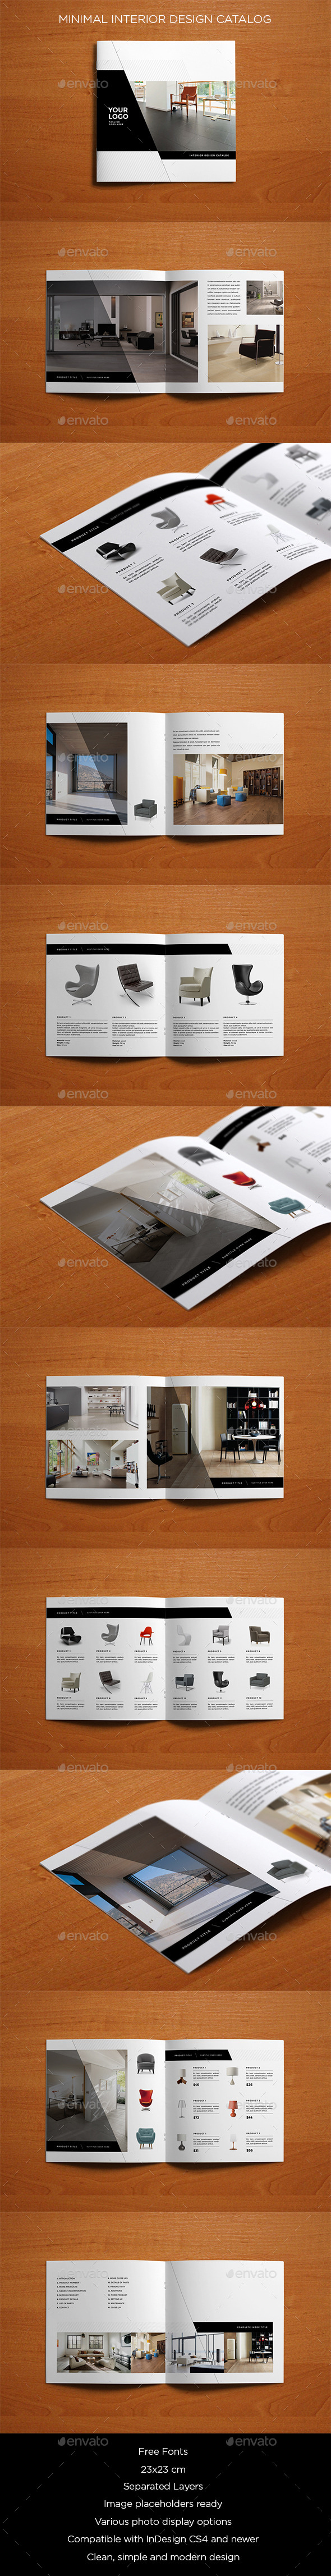 Minimal Interior Design Catalog